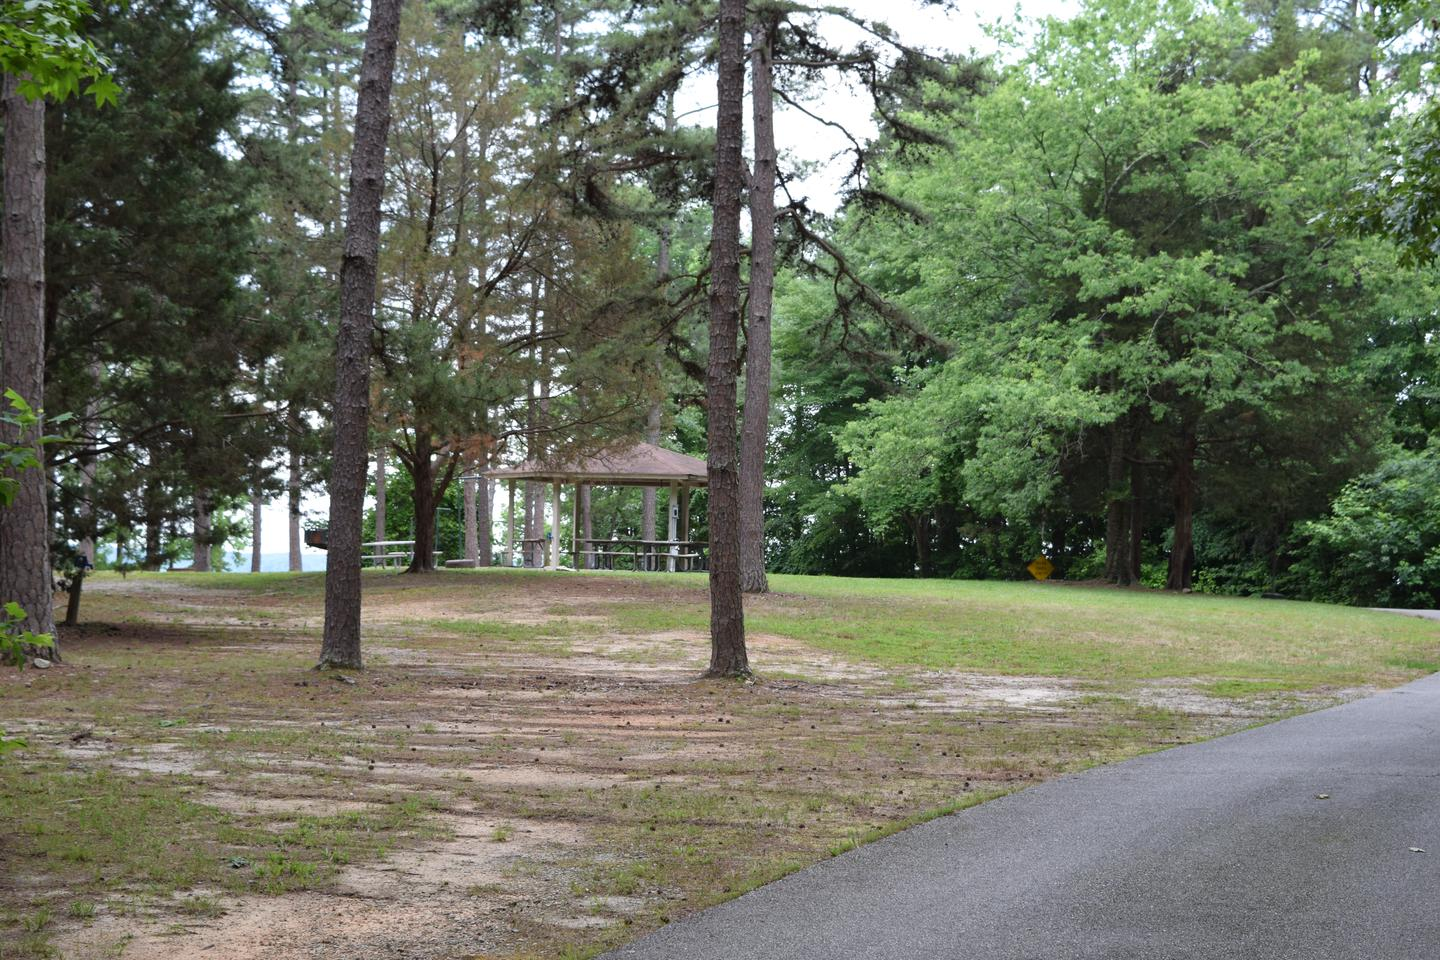 Mays Chapel far away shelterWelcome to Mays Chapel Group Camping Area! This is a picture of the entrance to the group camping area. This has the small shelter in the back ground.